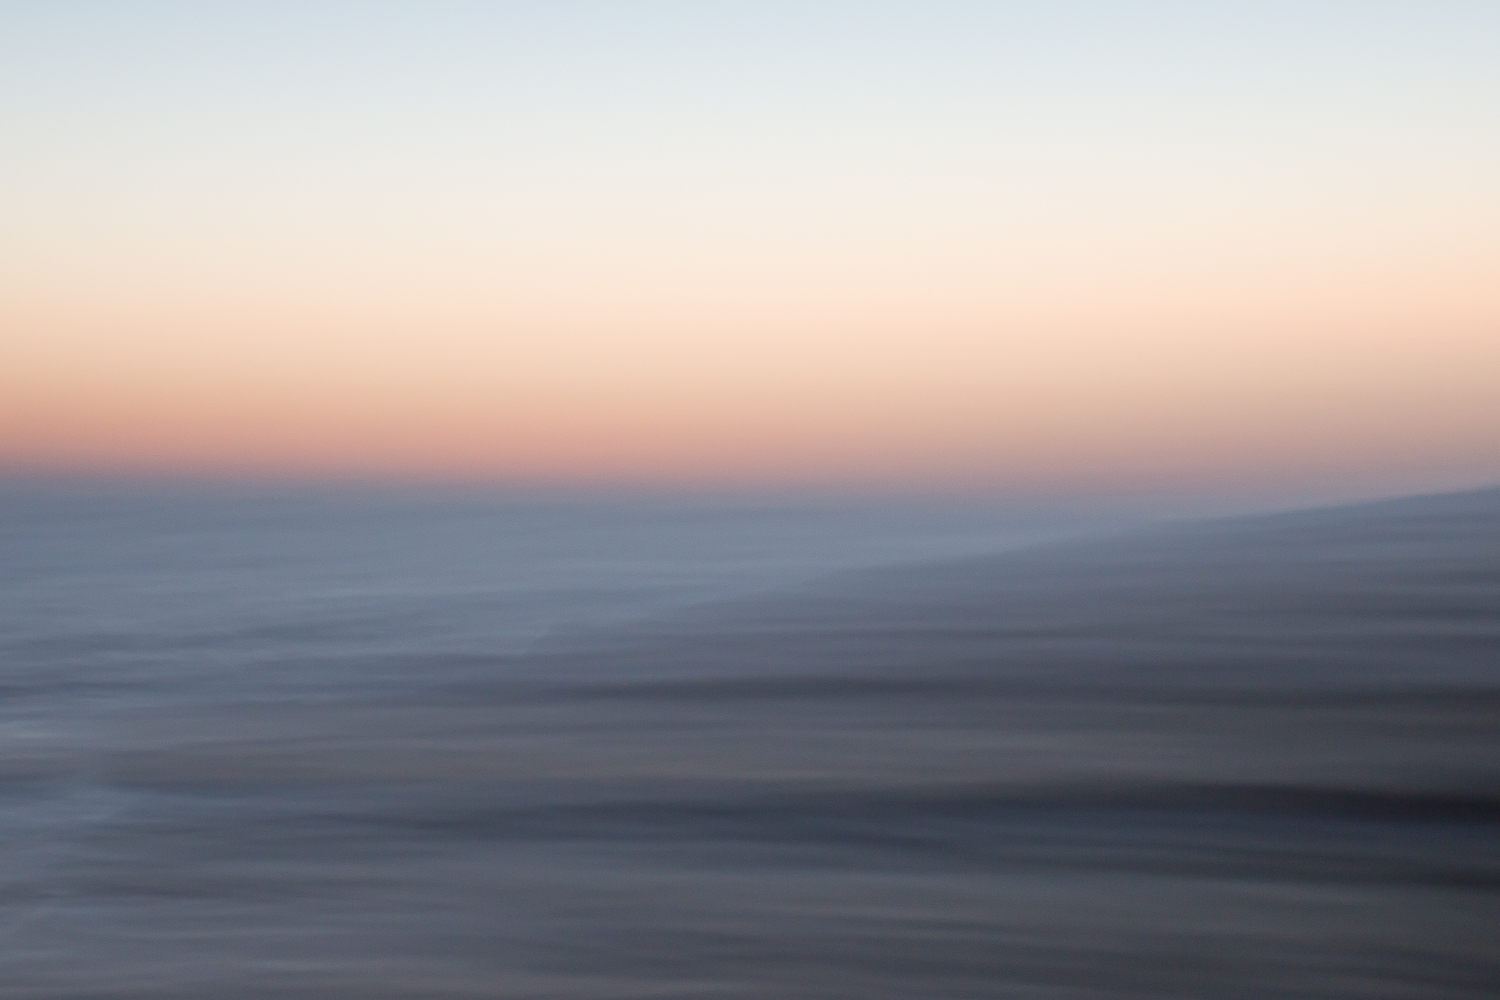 bodega head abstract crop1-2.jpg